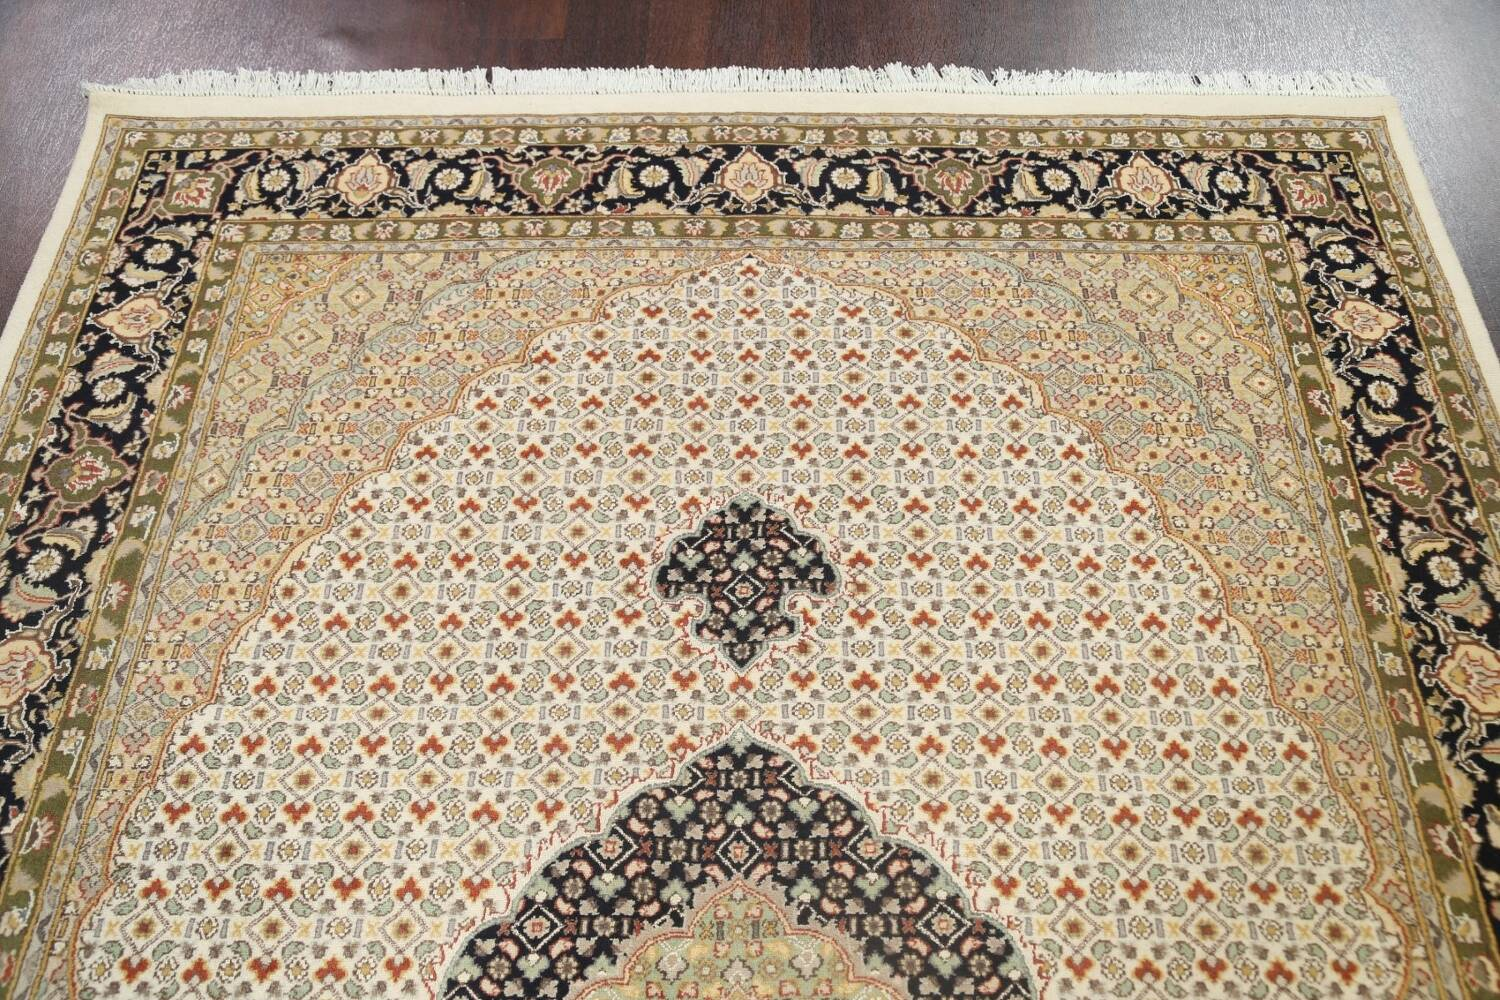 100% Vegetable Dye Tabriz Mahi Oriental Area Rug 6x9 image 9